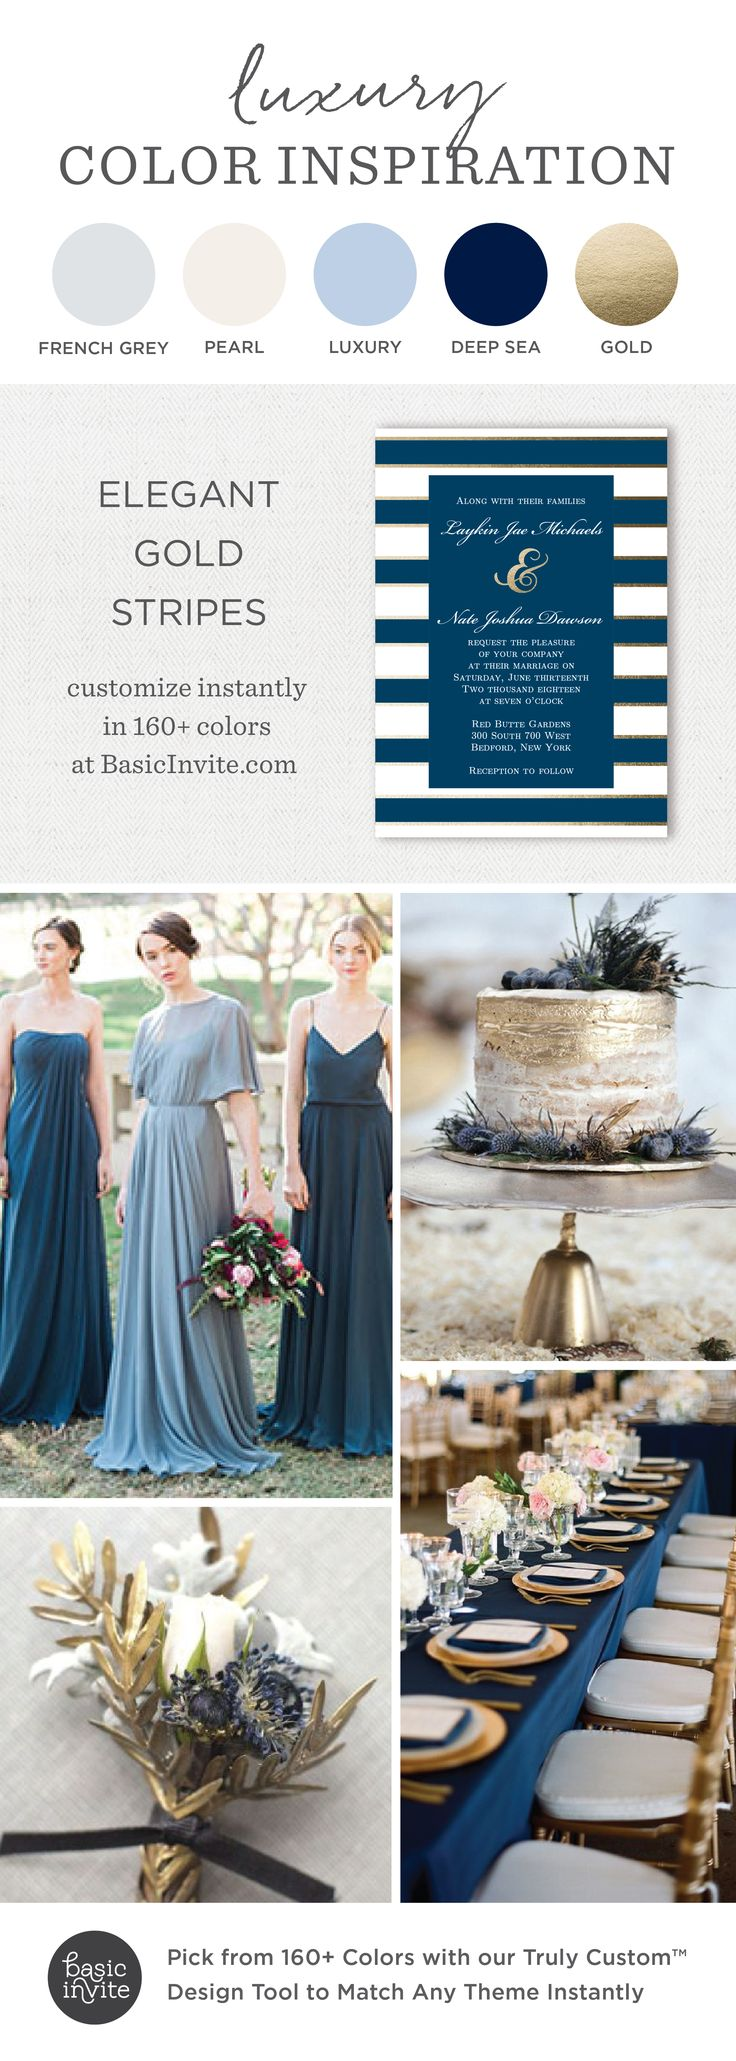 Elegant Gold Stripe Wedding Invitations, Blue Wedding Inspiration, Luxury Wedding Invitations